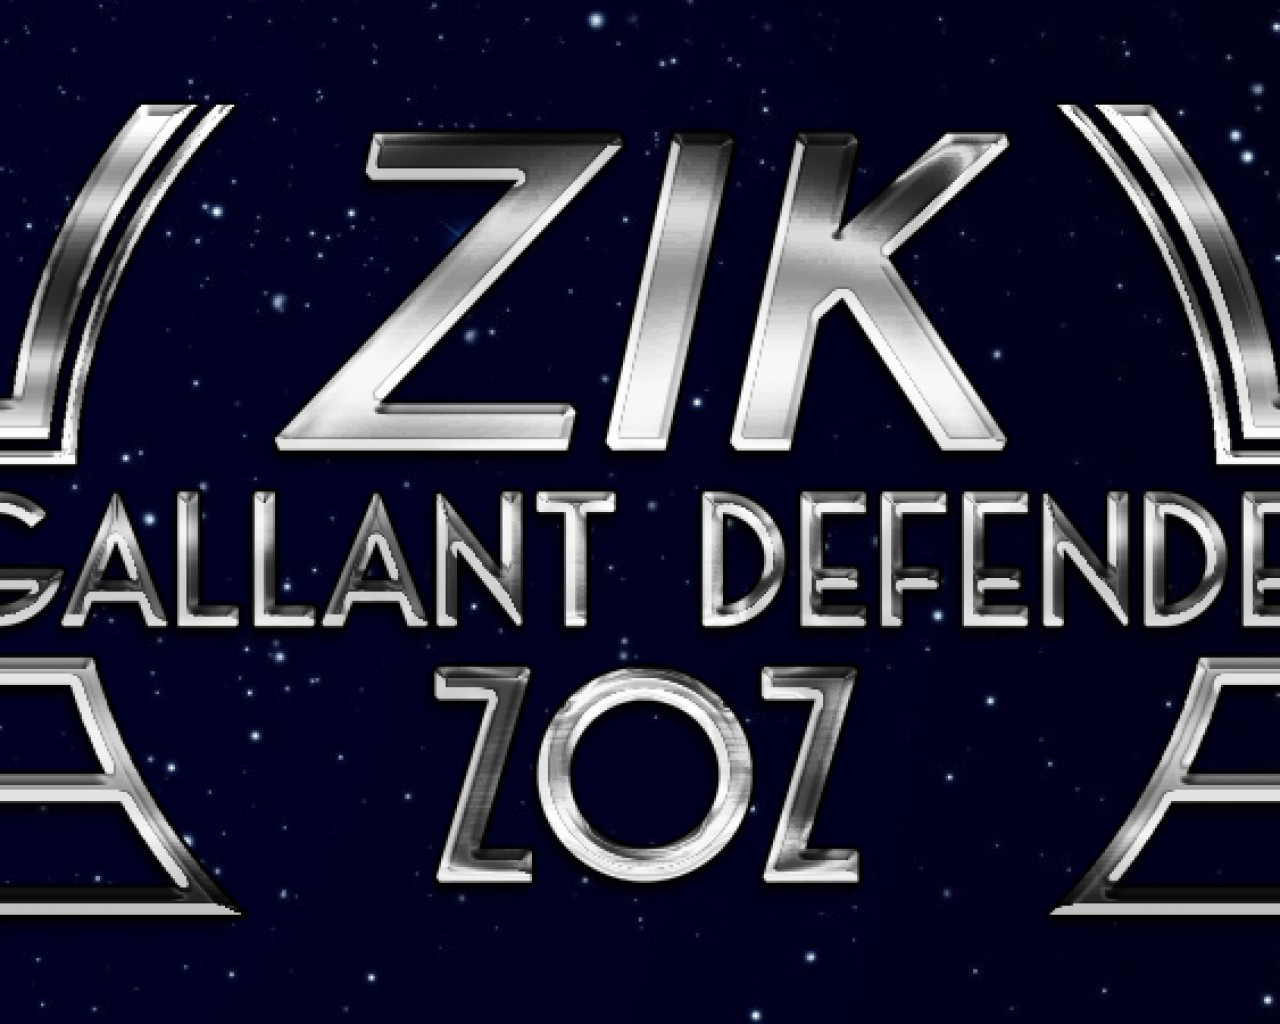 Poster Image for Zik the Gallant Defender of Zoz